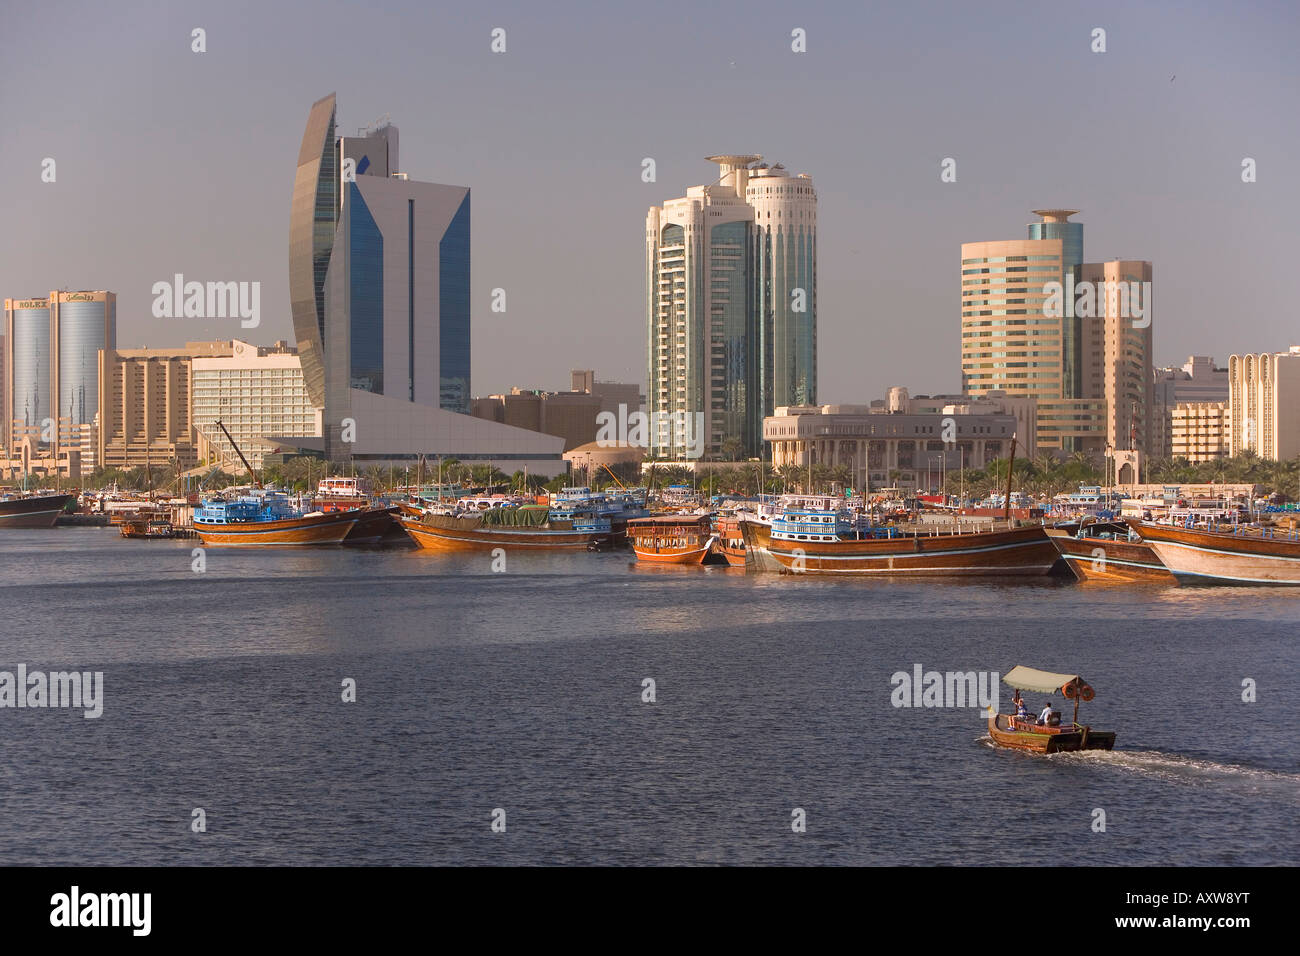 Dubai Creek (Khor Dubai), Dhow Wharfage and Commercial Centre, Deira, Dubai, United Arab Emirates, Middle East - Stock Image